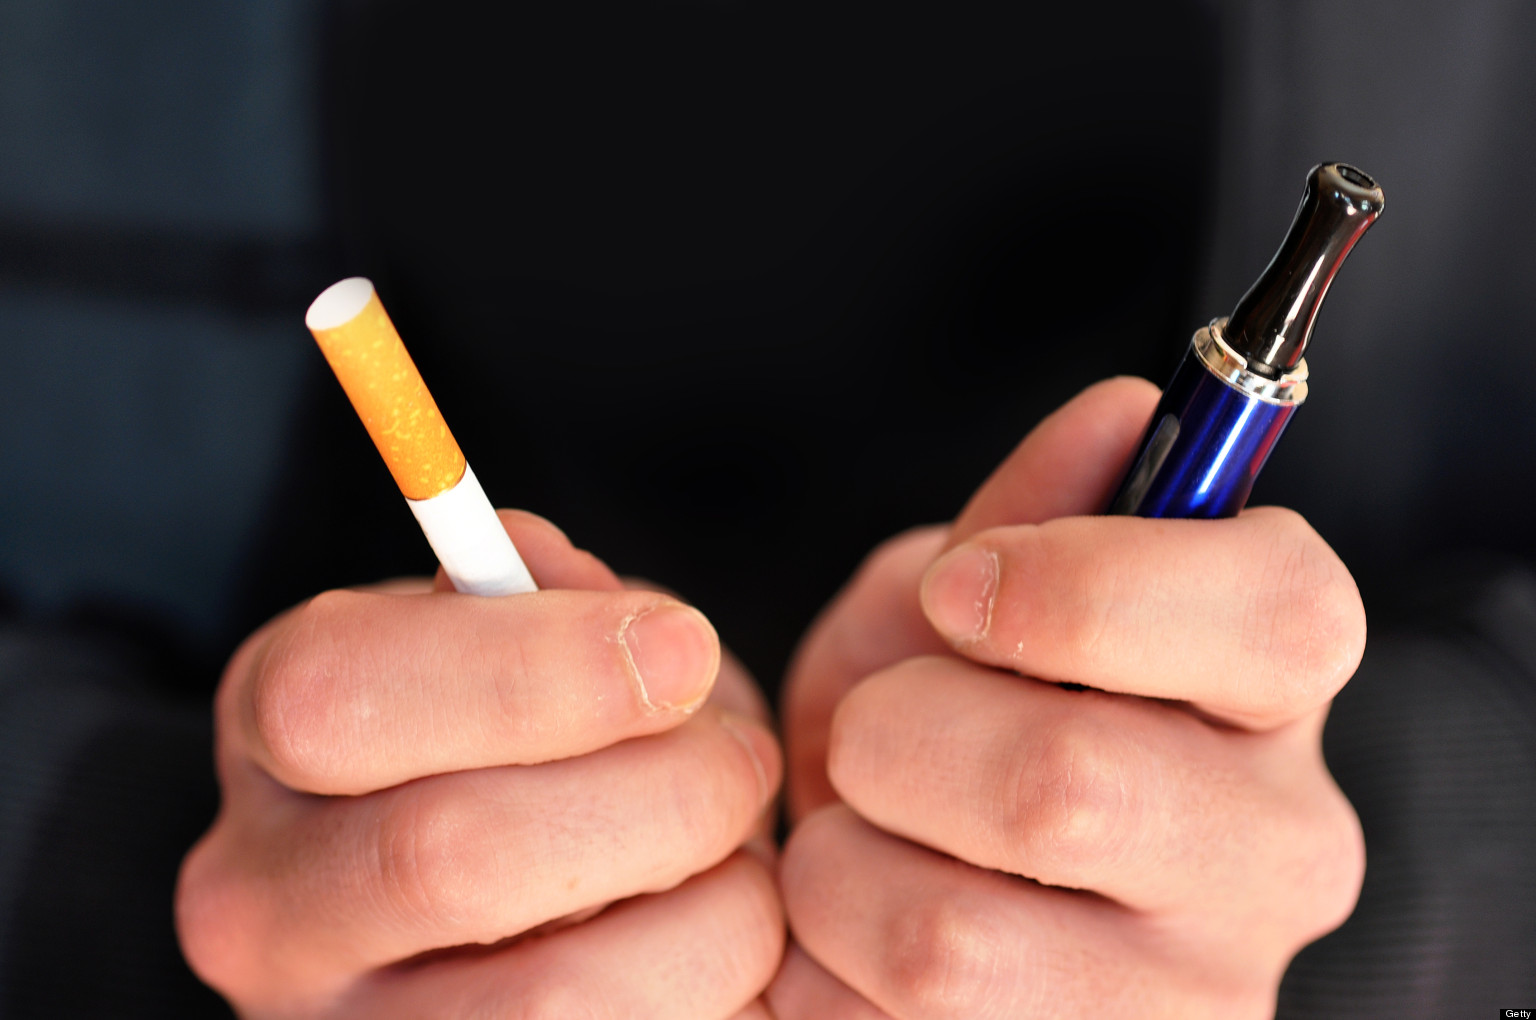 A picture of two hands one holding a cigarette and one holding an e-cigarette